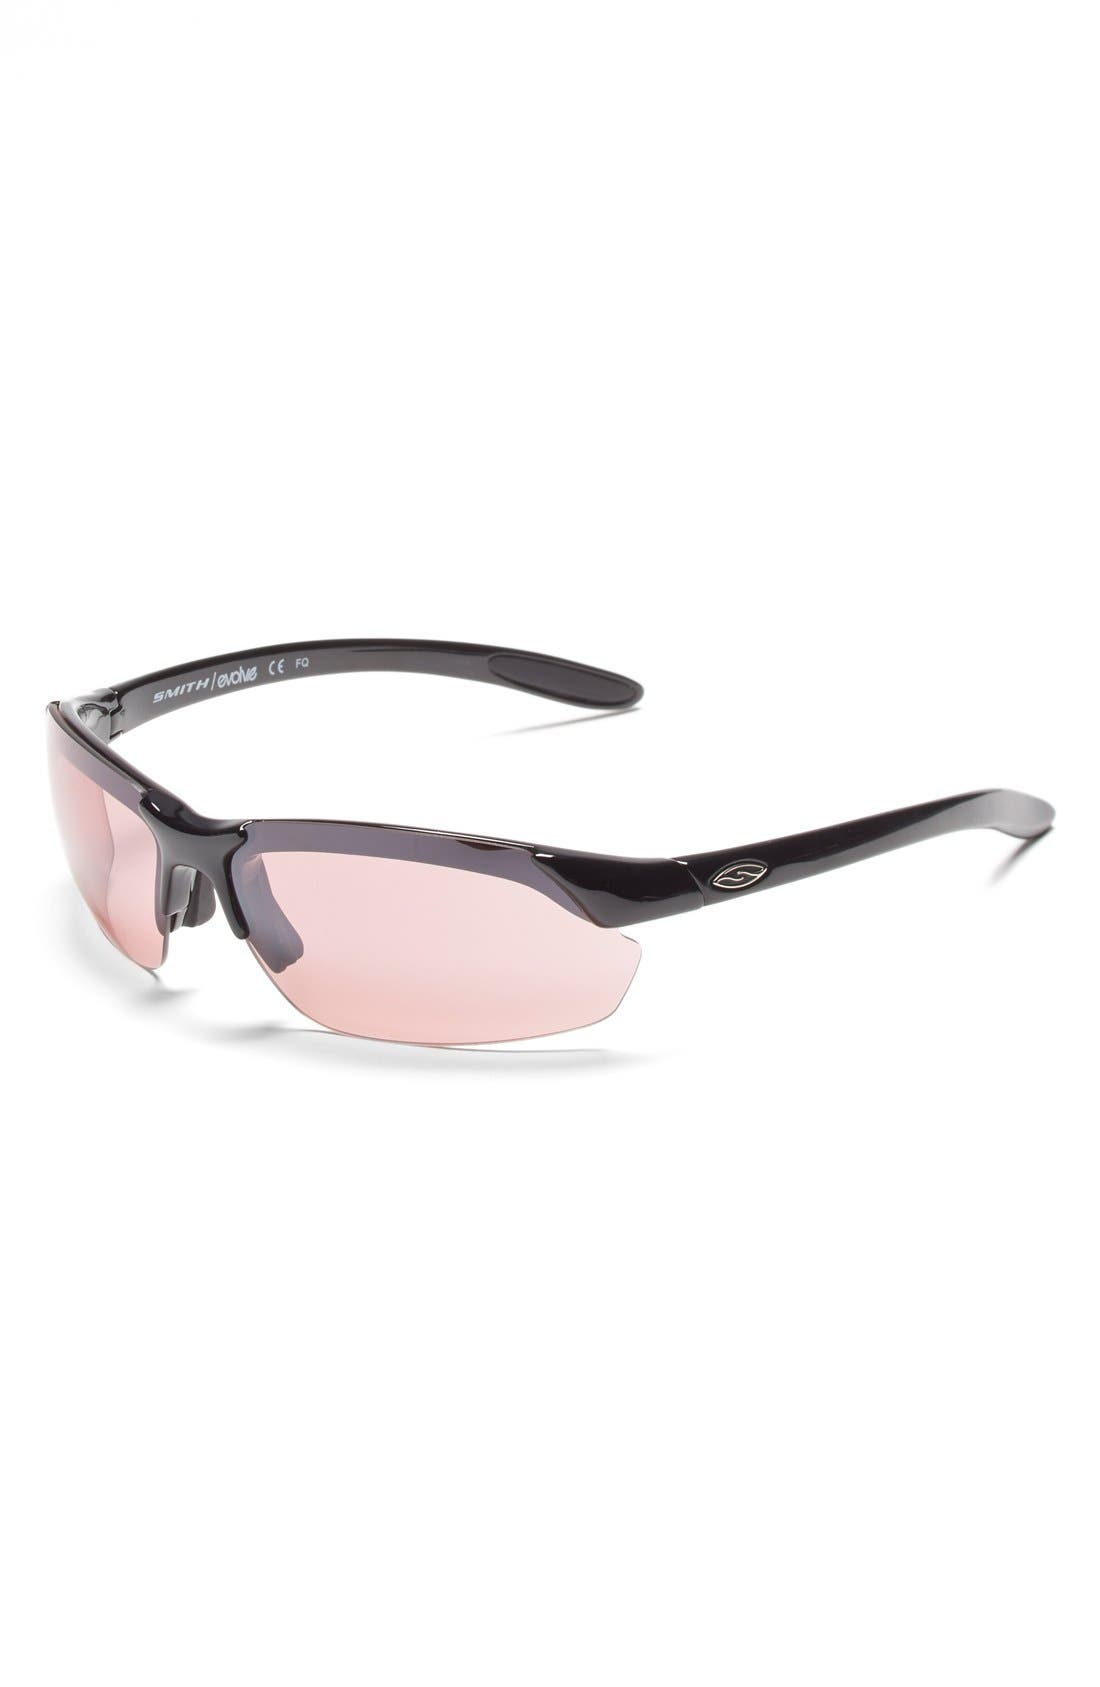 'Parallel Max' 65mm Polarized Sunglasses,                             Alternate thumbnail 6, color,                             001